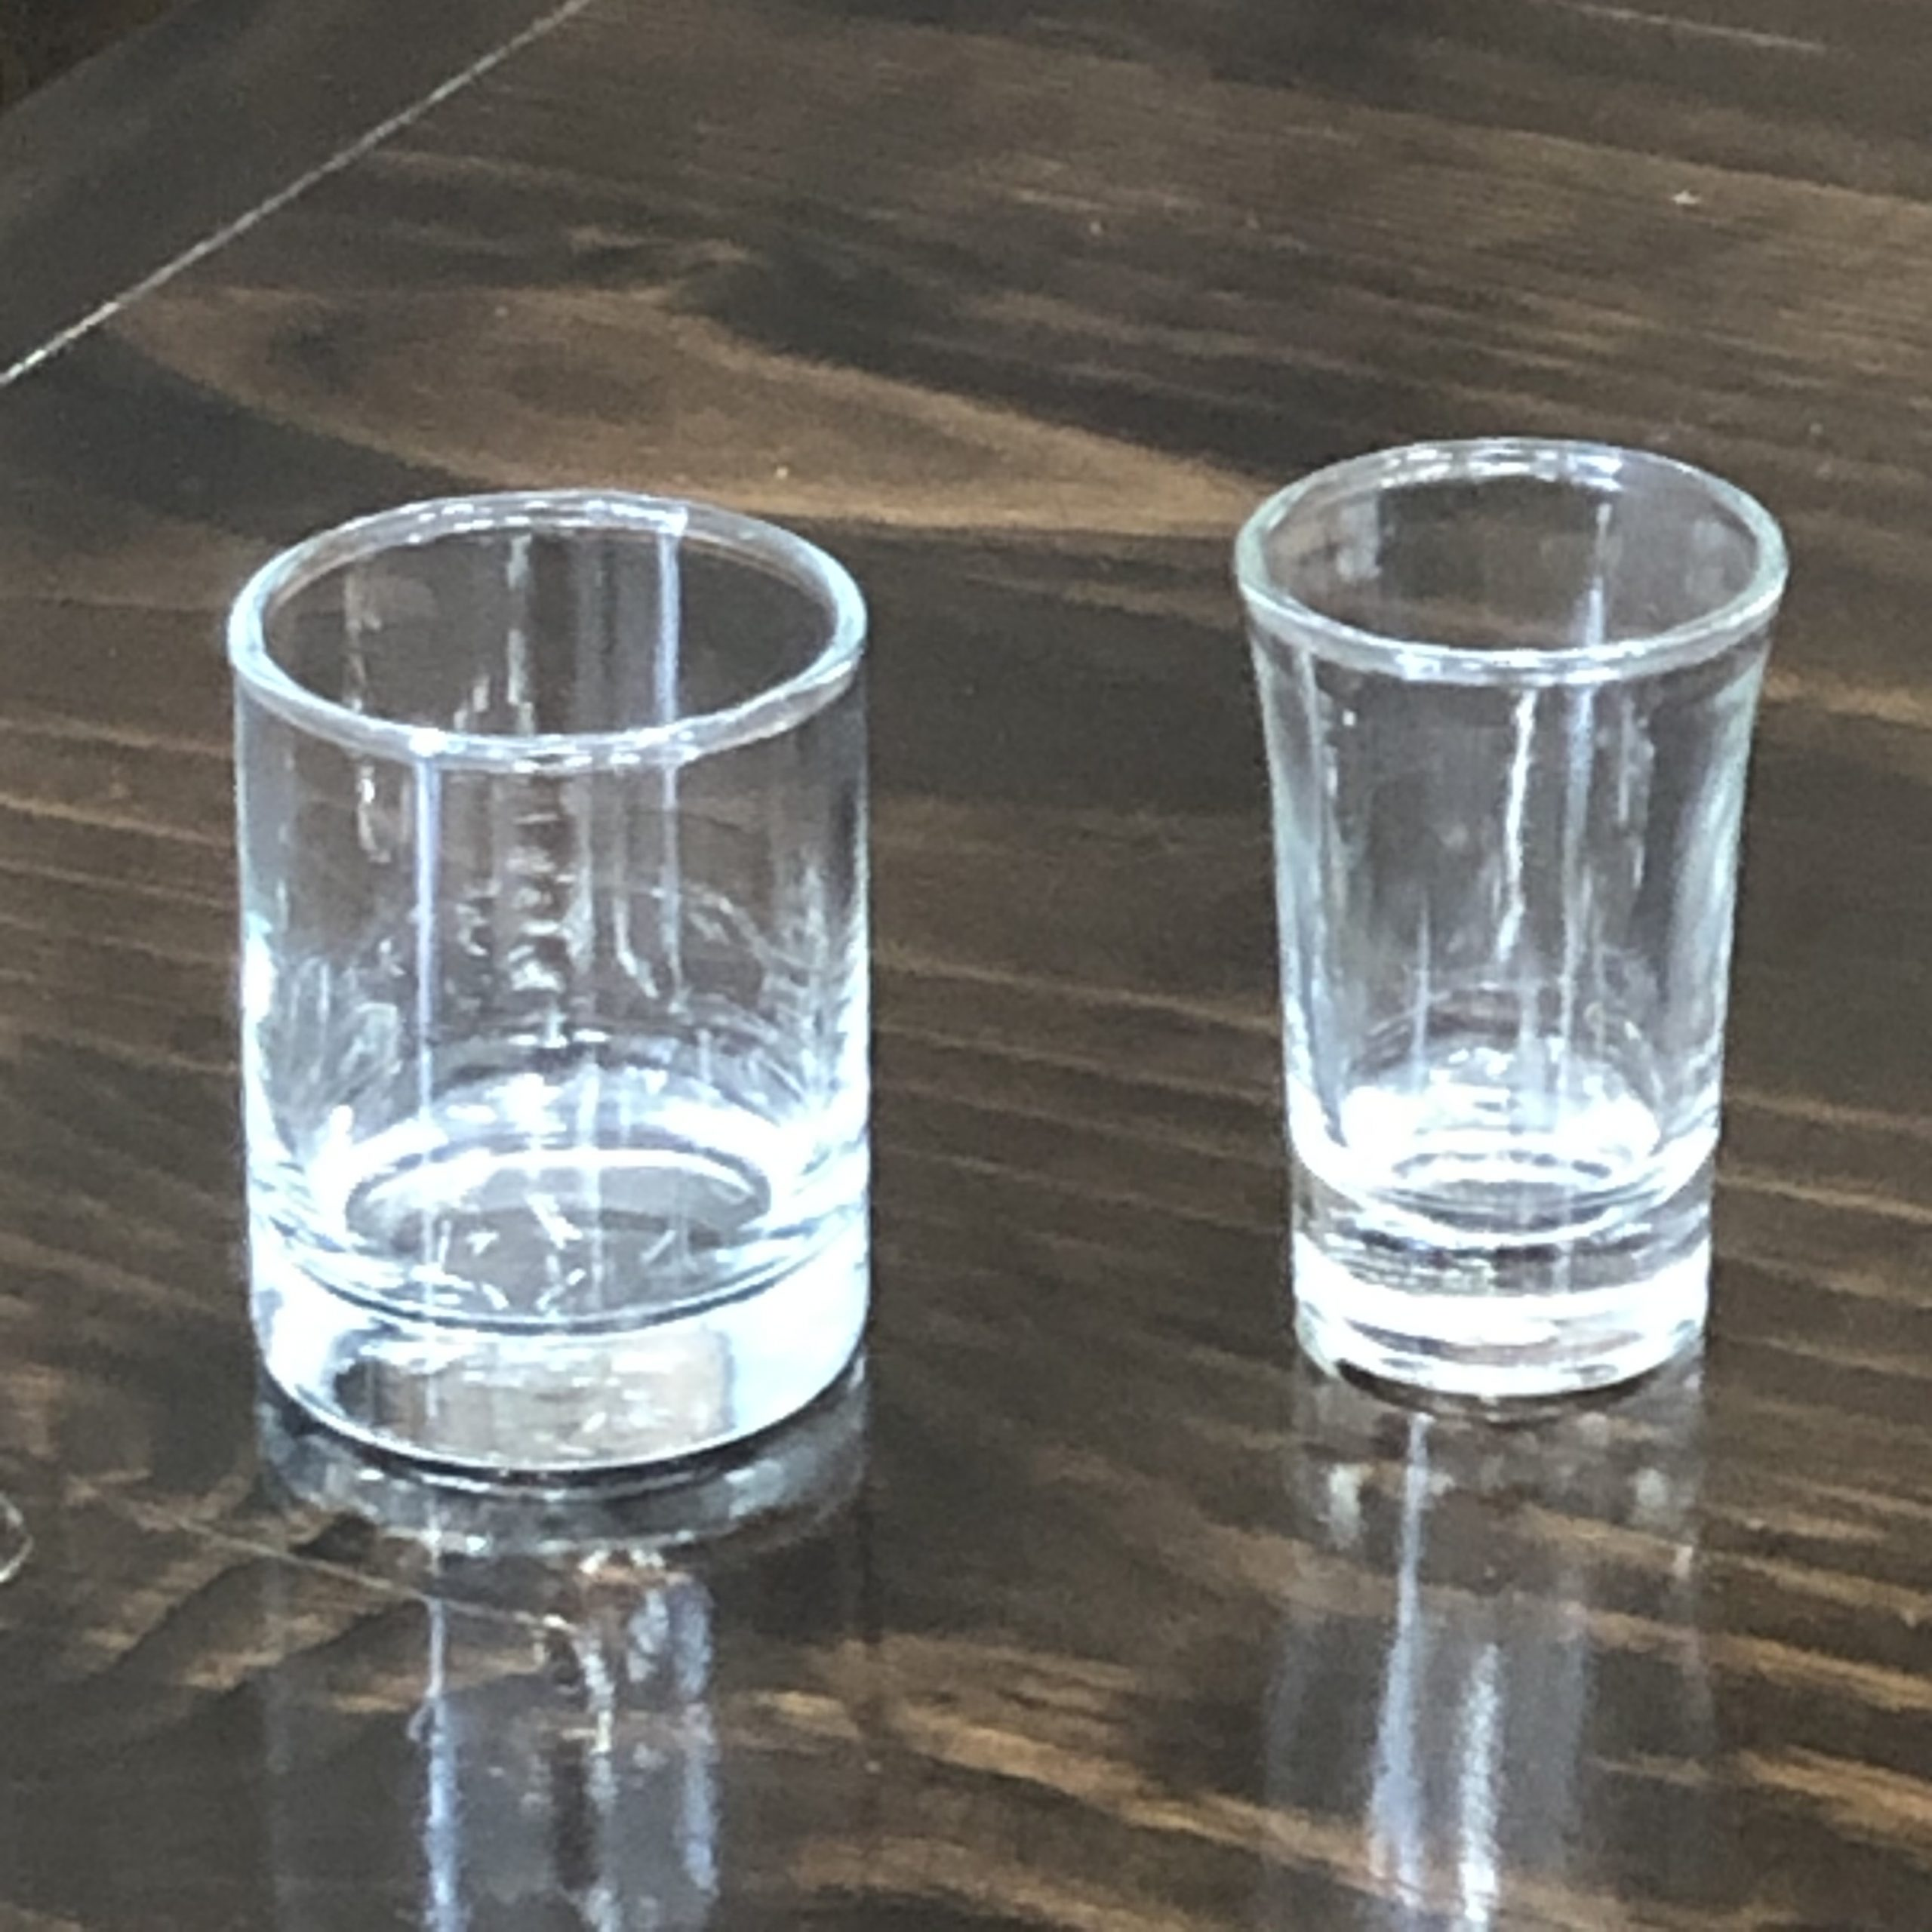 Shooter Glasses Image